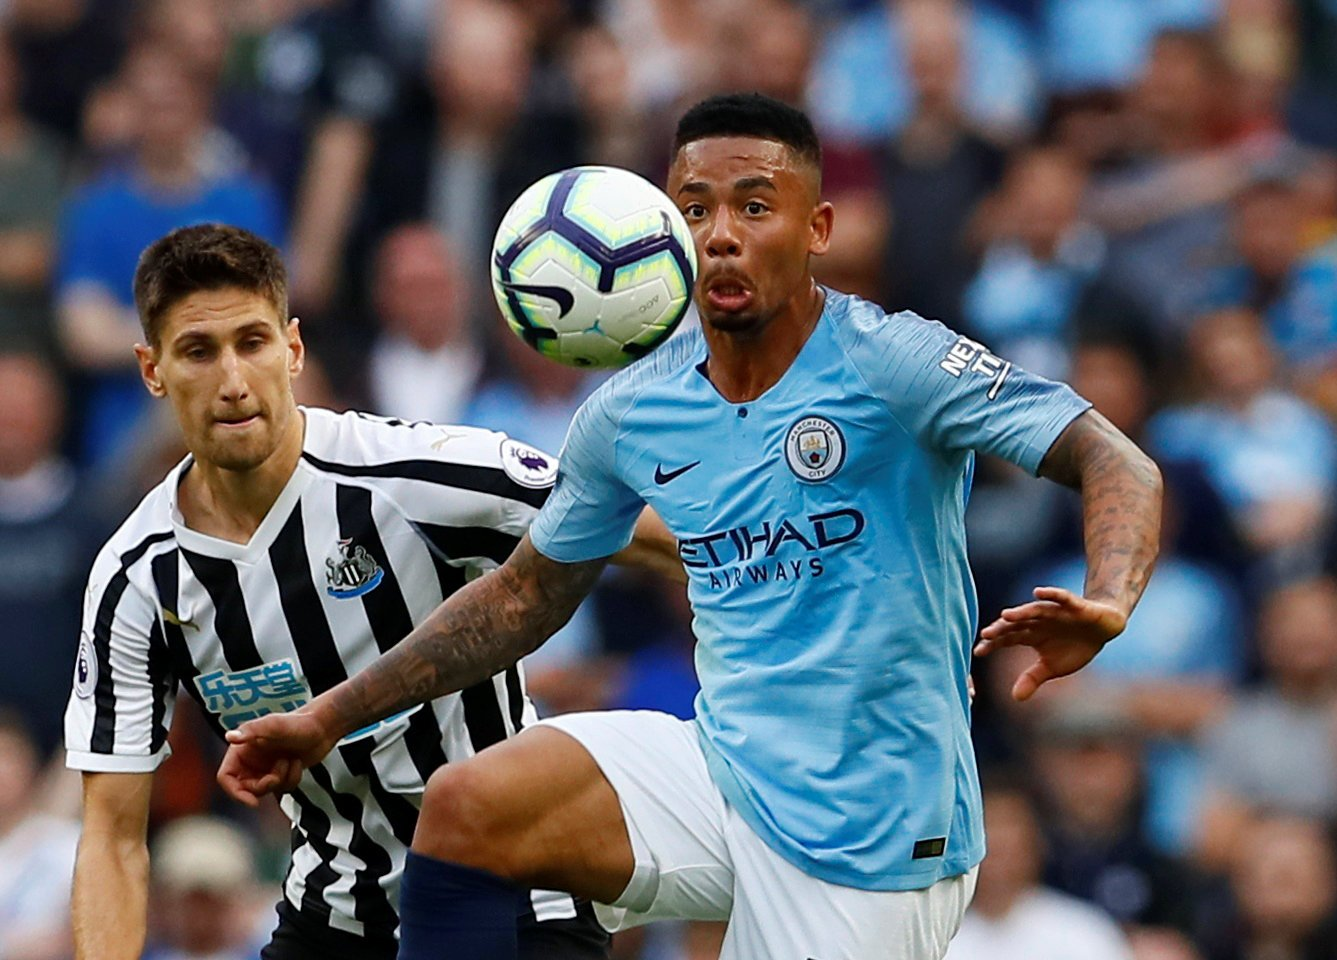 Manchester City: Gabriel Jesus to miss Brighton game with hamstring injury